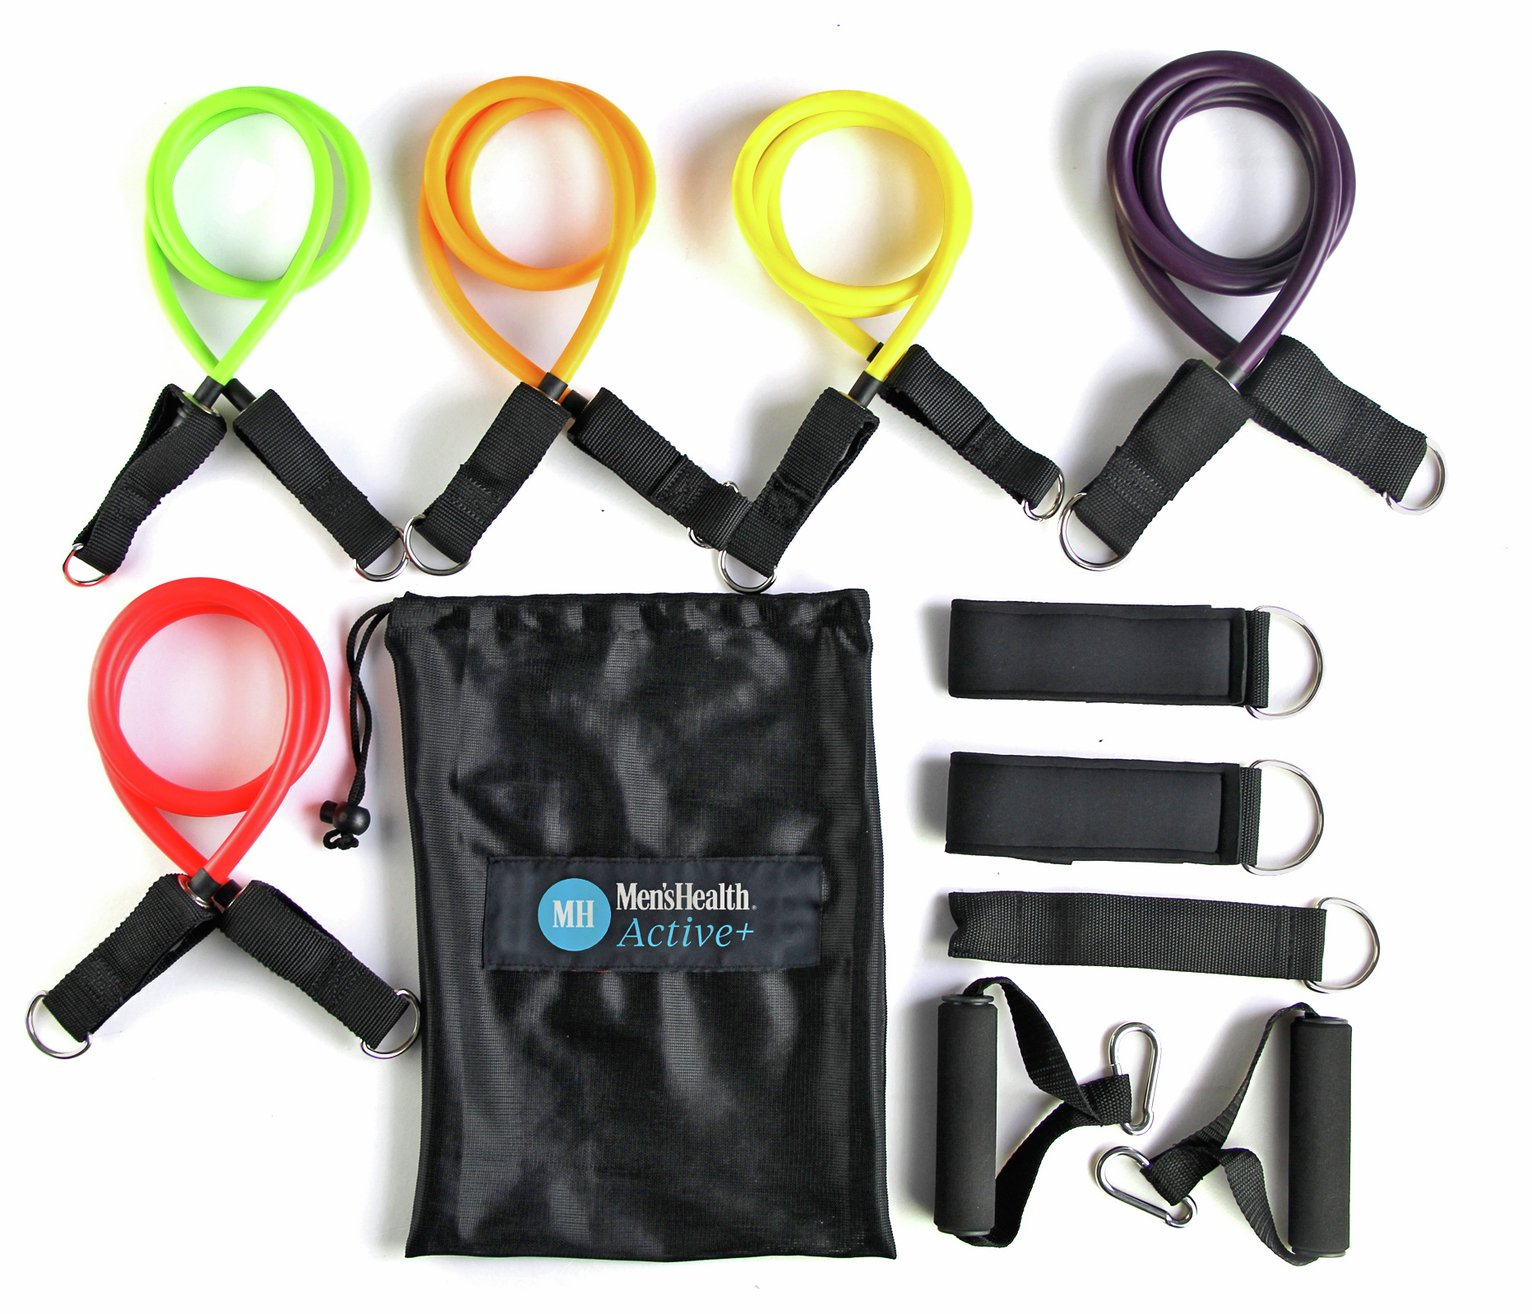 Men's Health Resistance Band Tube Set - 5 Pack